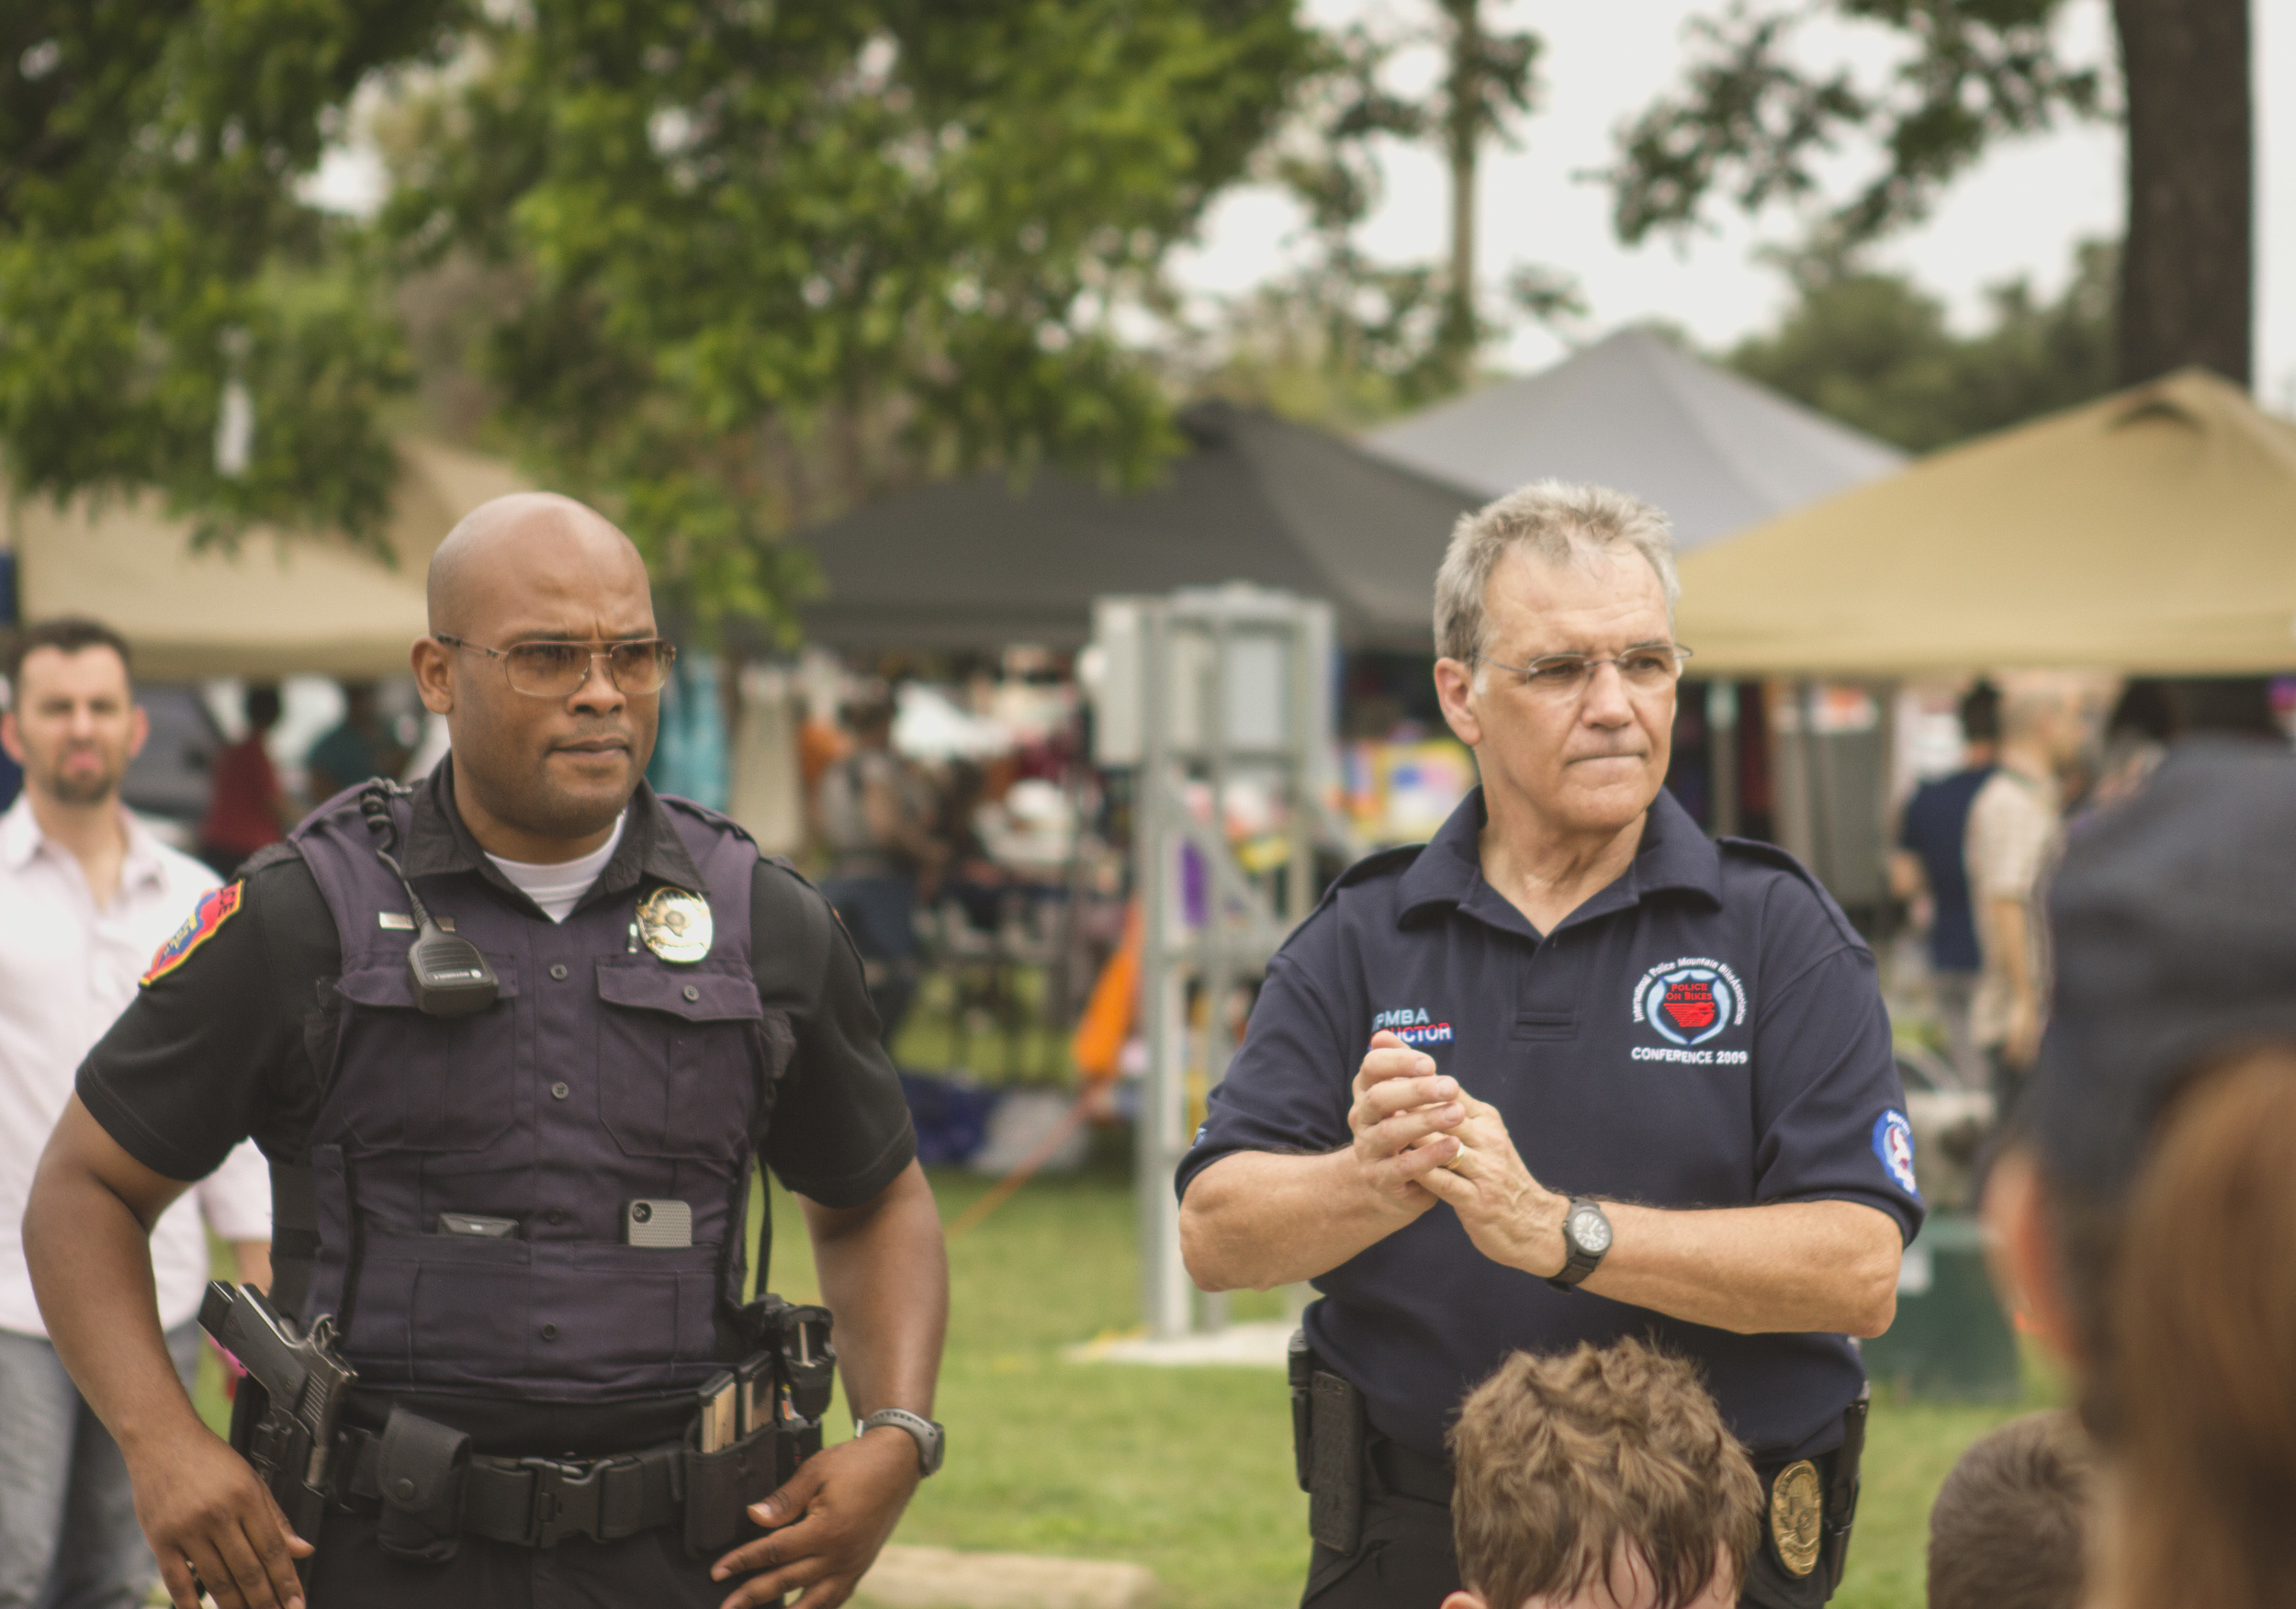 Denton Police Lt. Thomas Woods and Denton PD bike officer, Donnie Carr, look on as kids practice bike safety.